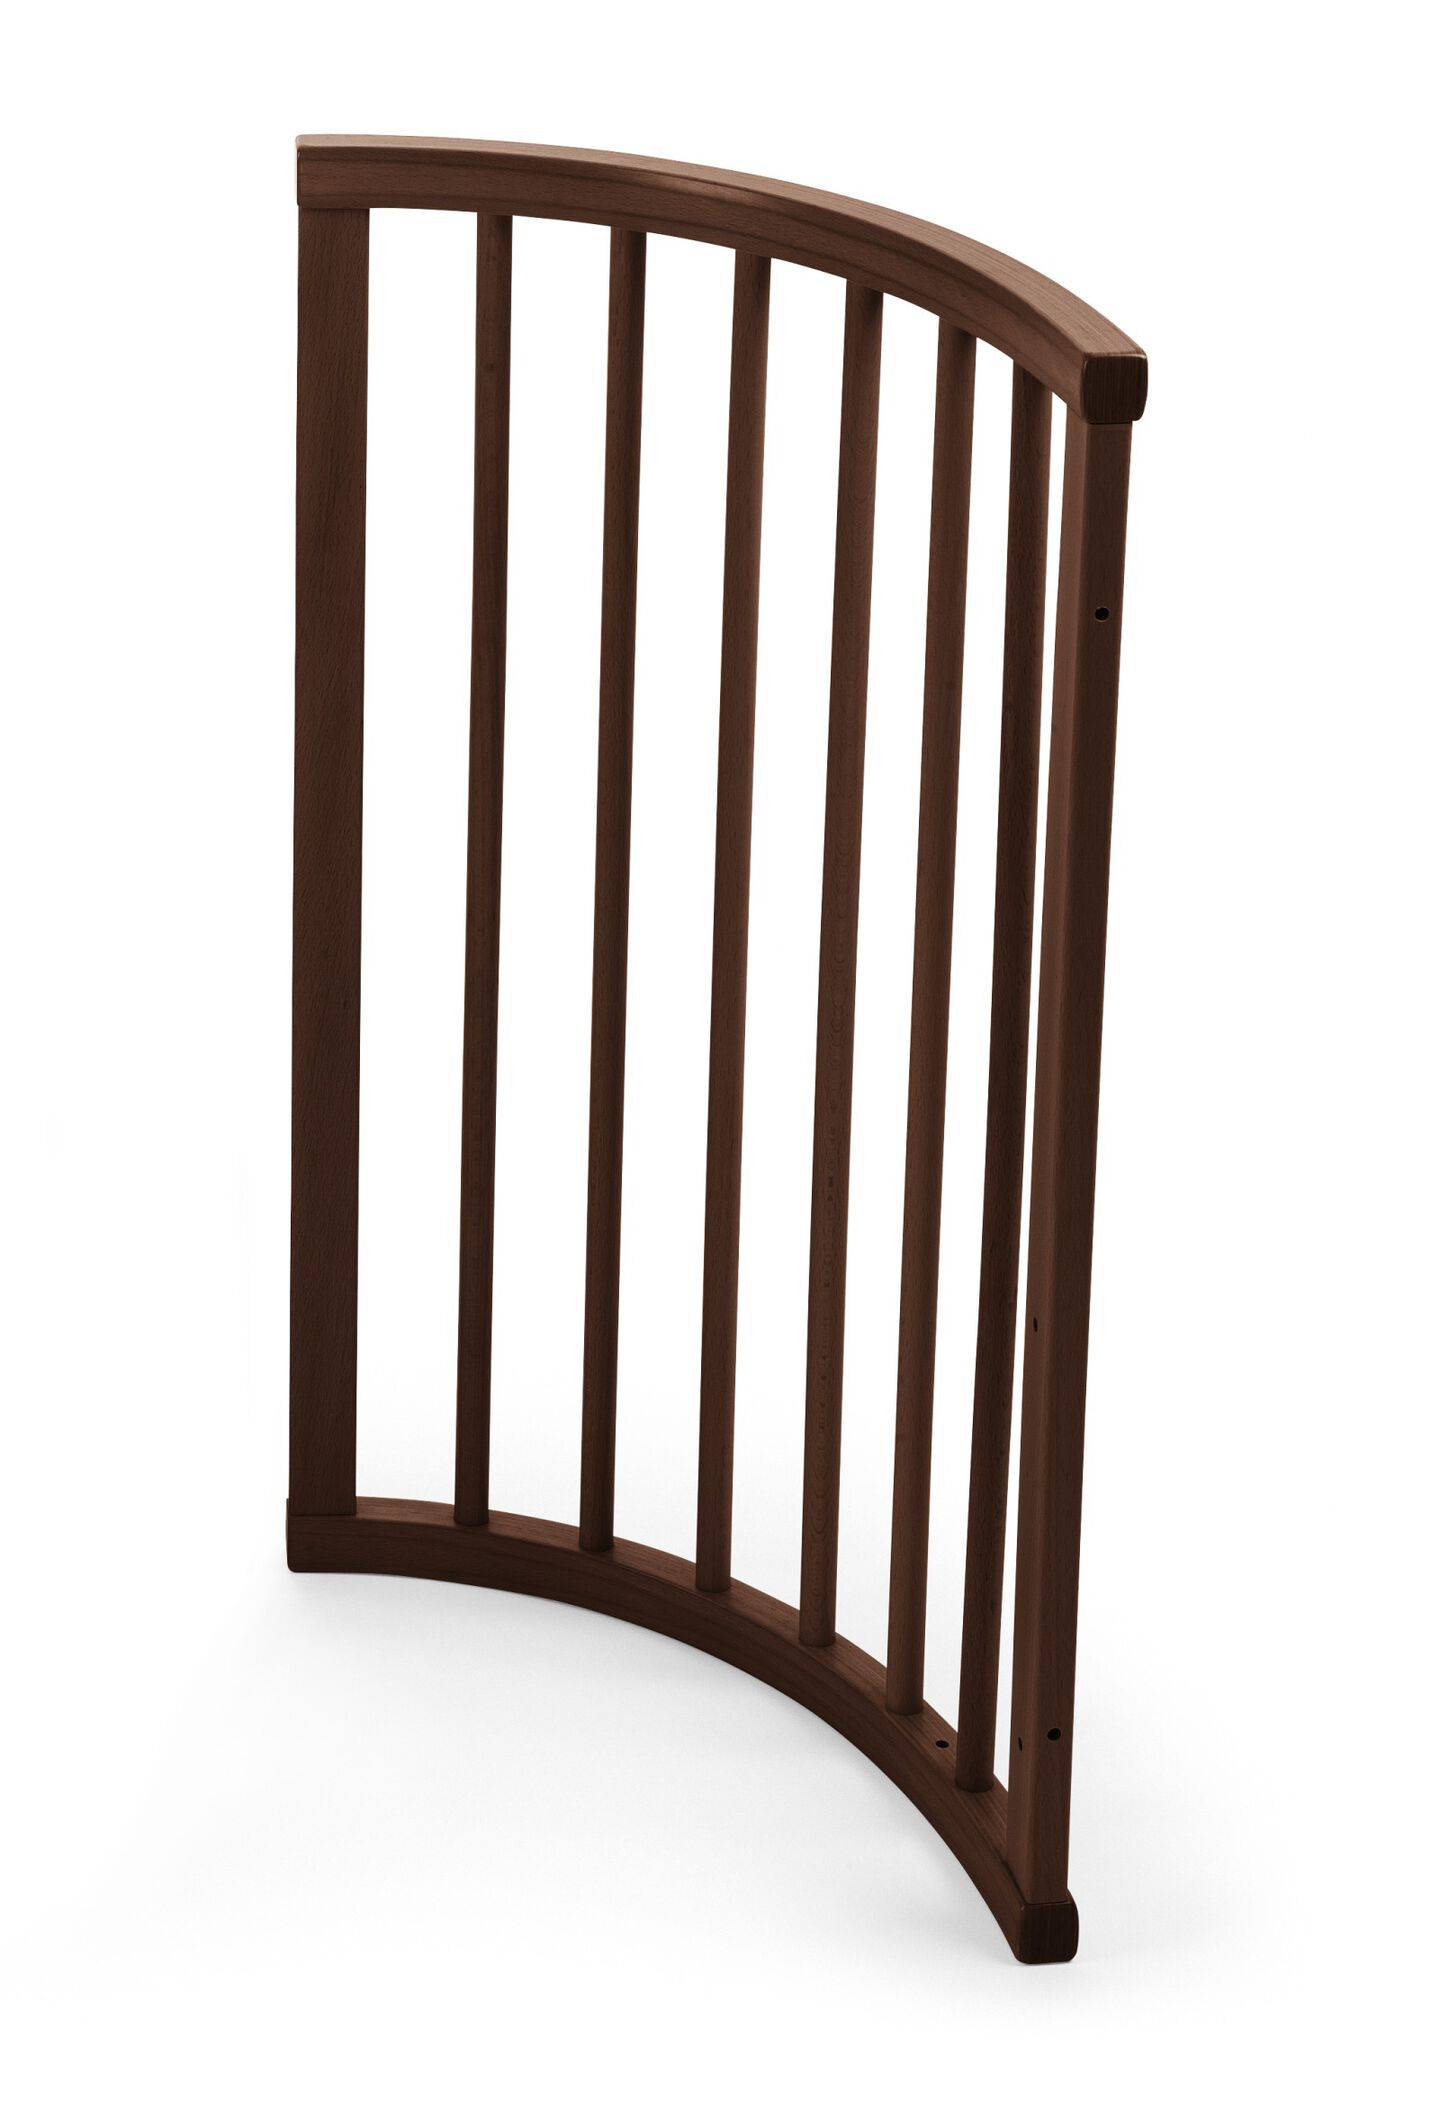 Spare part. 115001 Sleepi end section right Walnut.